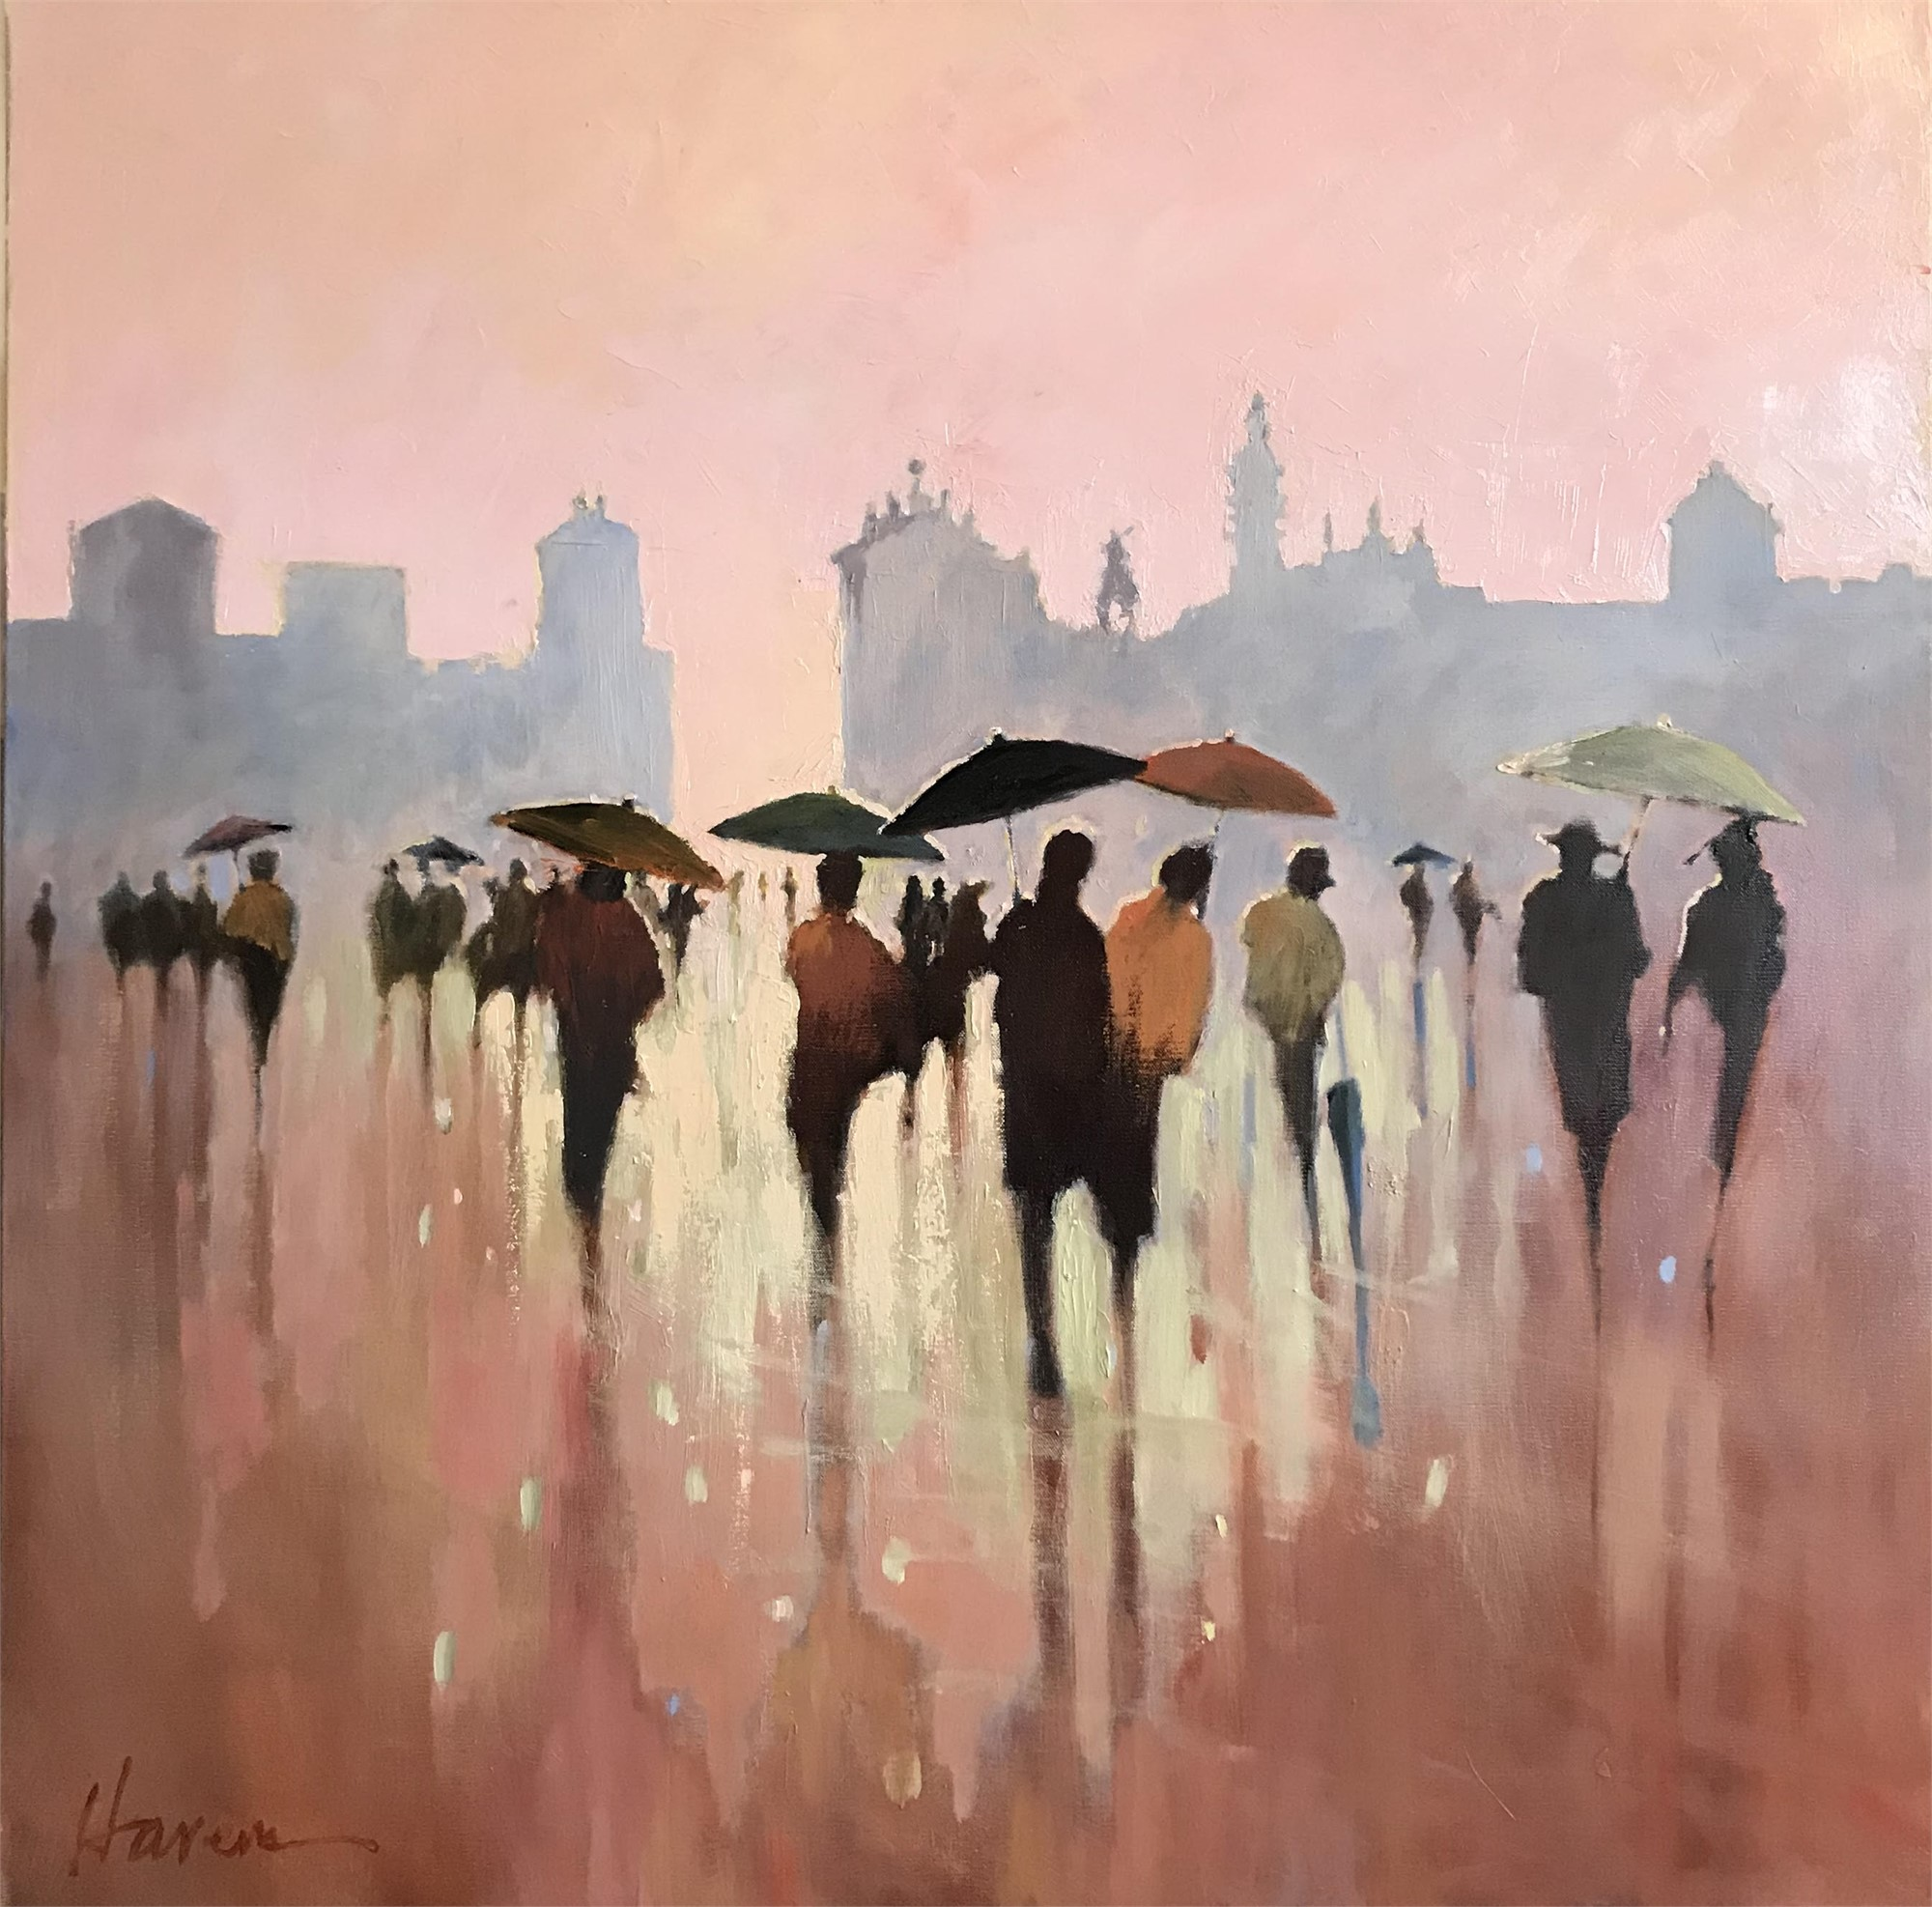 European Shower by Betsy Havens